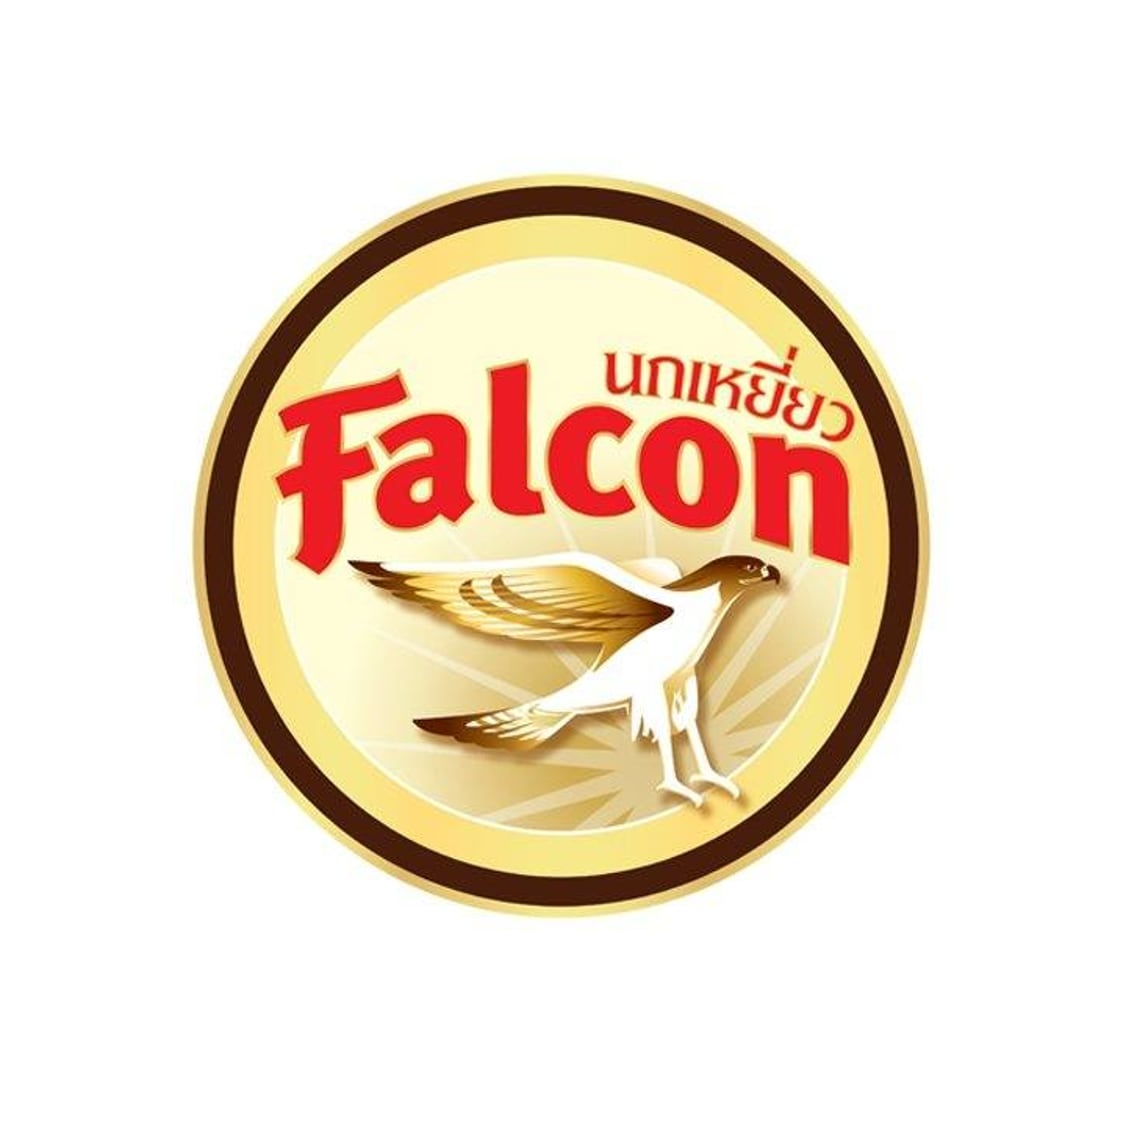 Falcons FrieslandCampina brand